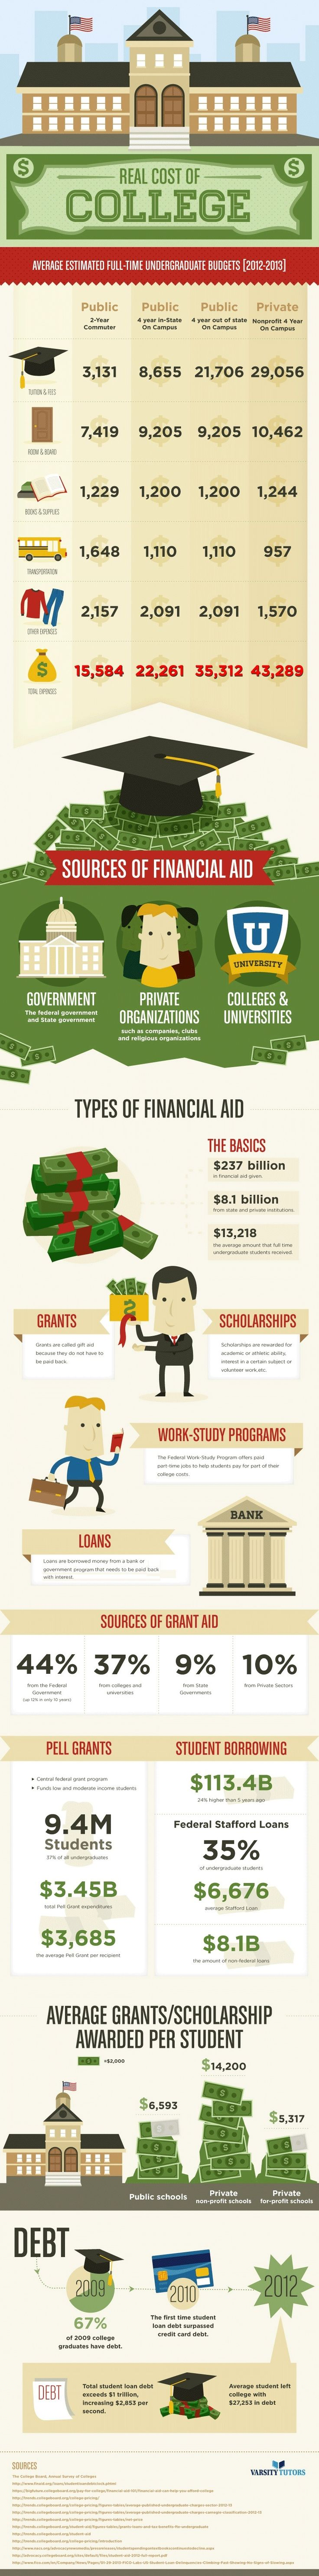 How much is the average American spending on higher education? More than you might expect. This infographic goes beyond tuition and offers a comprehensive breakdown of the real costs of college, as well as what goes into financing a degree, including the realities of student loan debt.